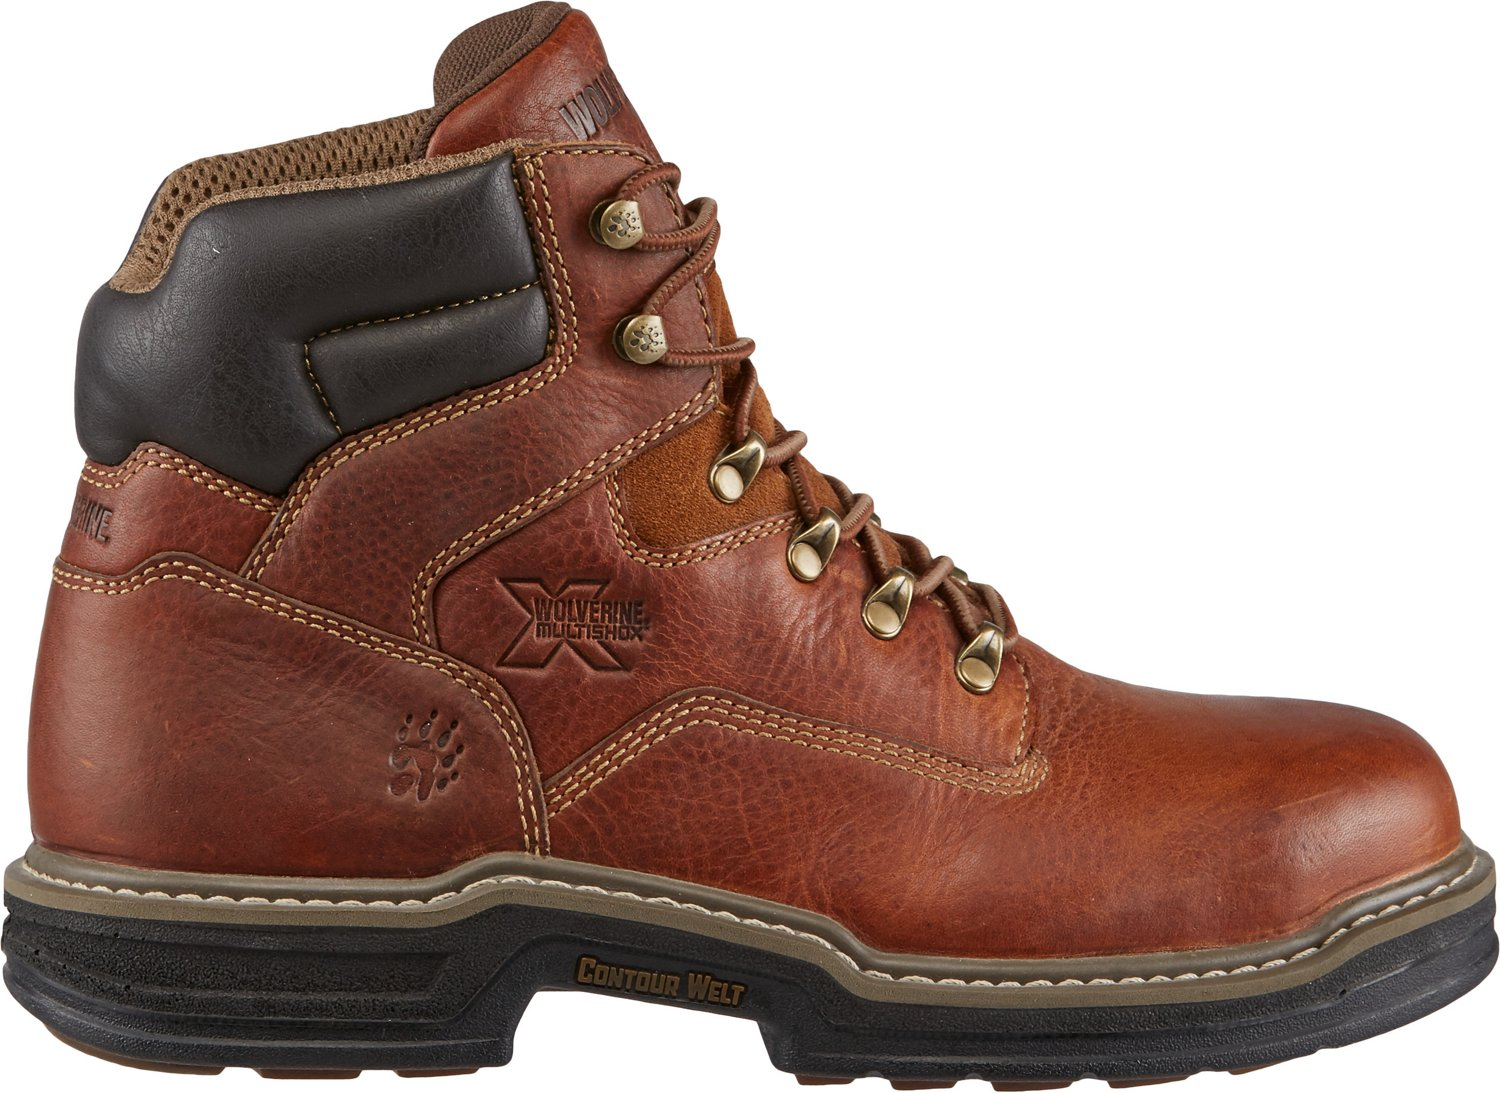 32308ada55d Wolverine Men's Raider EH Steel Toe Lace Up Work Boots